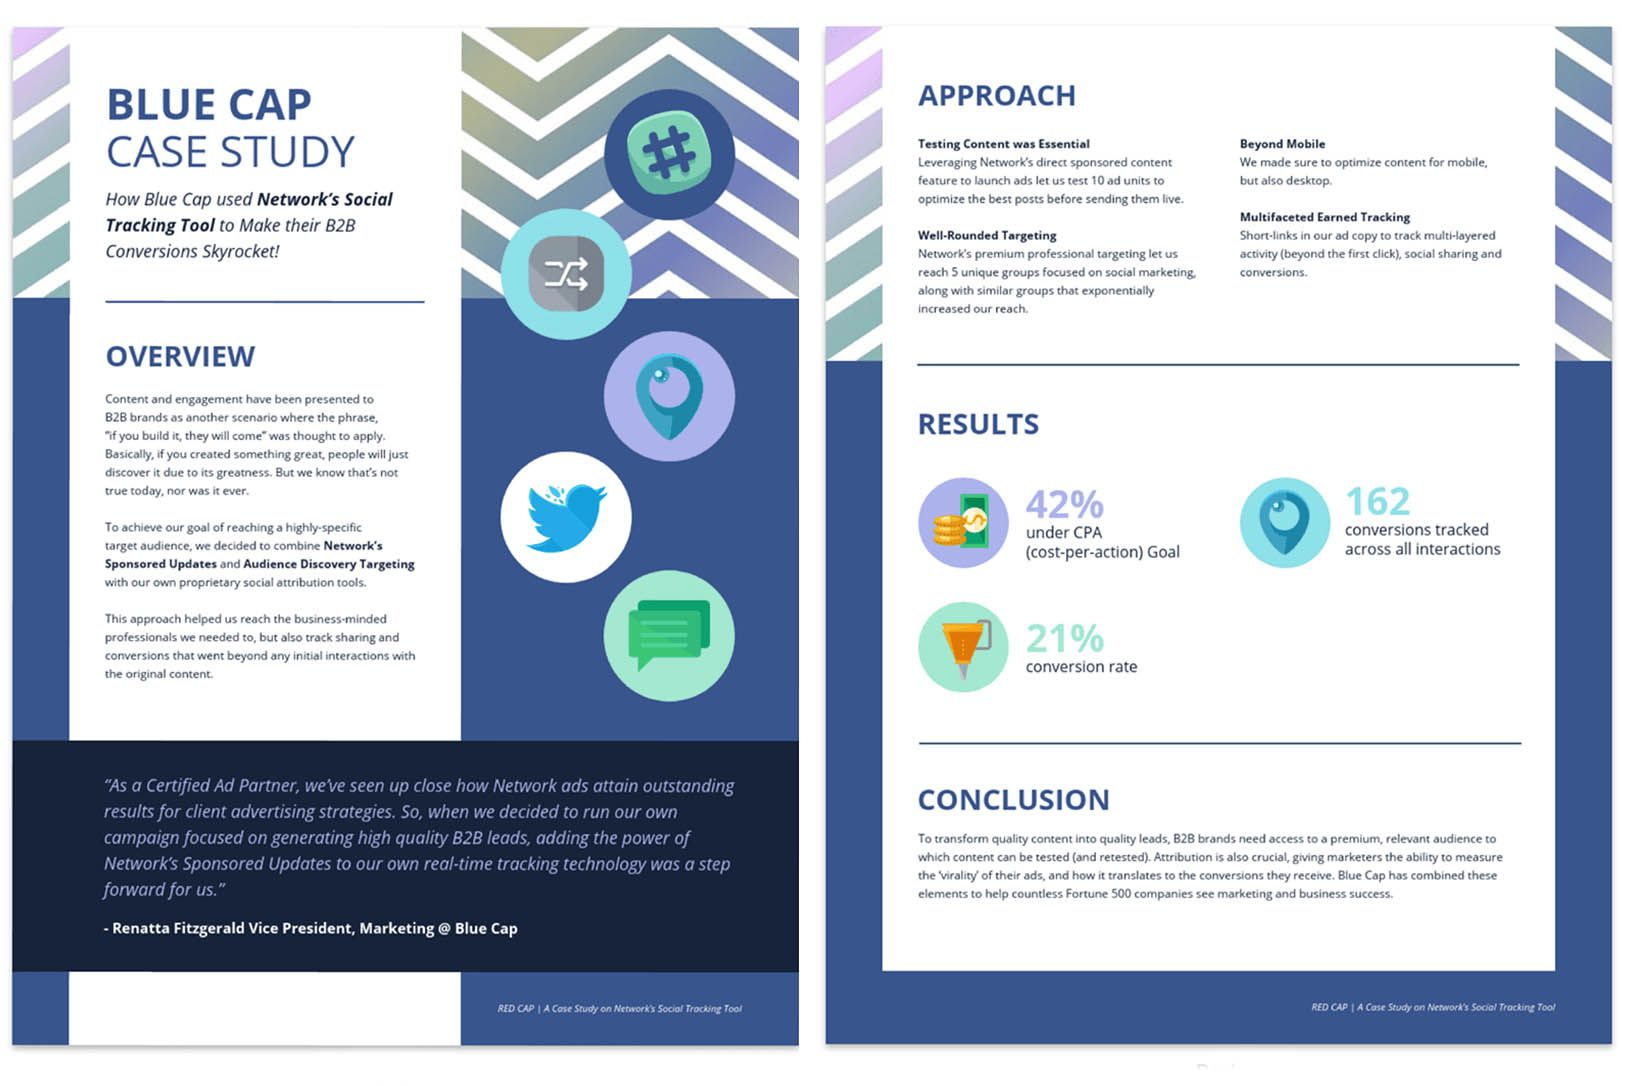 009 Frightening Busines Case Study Template Concept  One Page Download PptFull